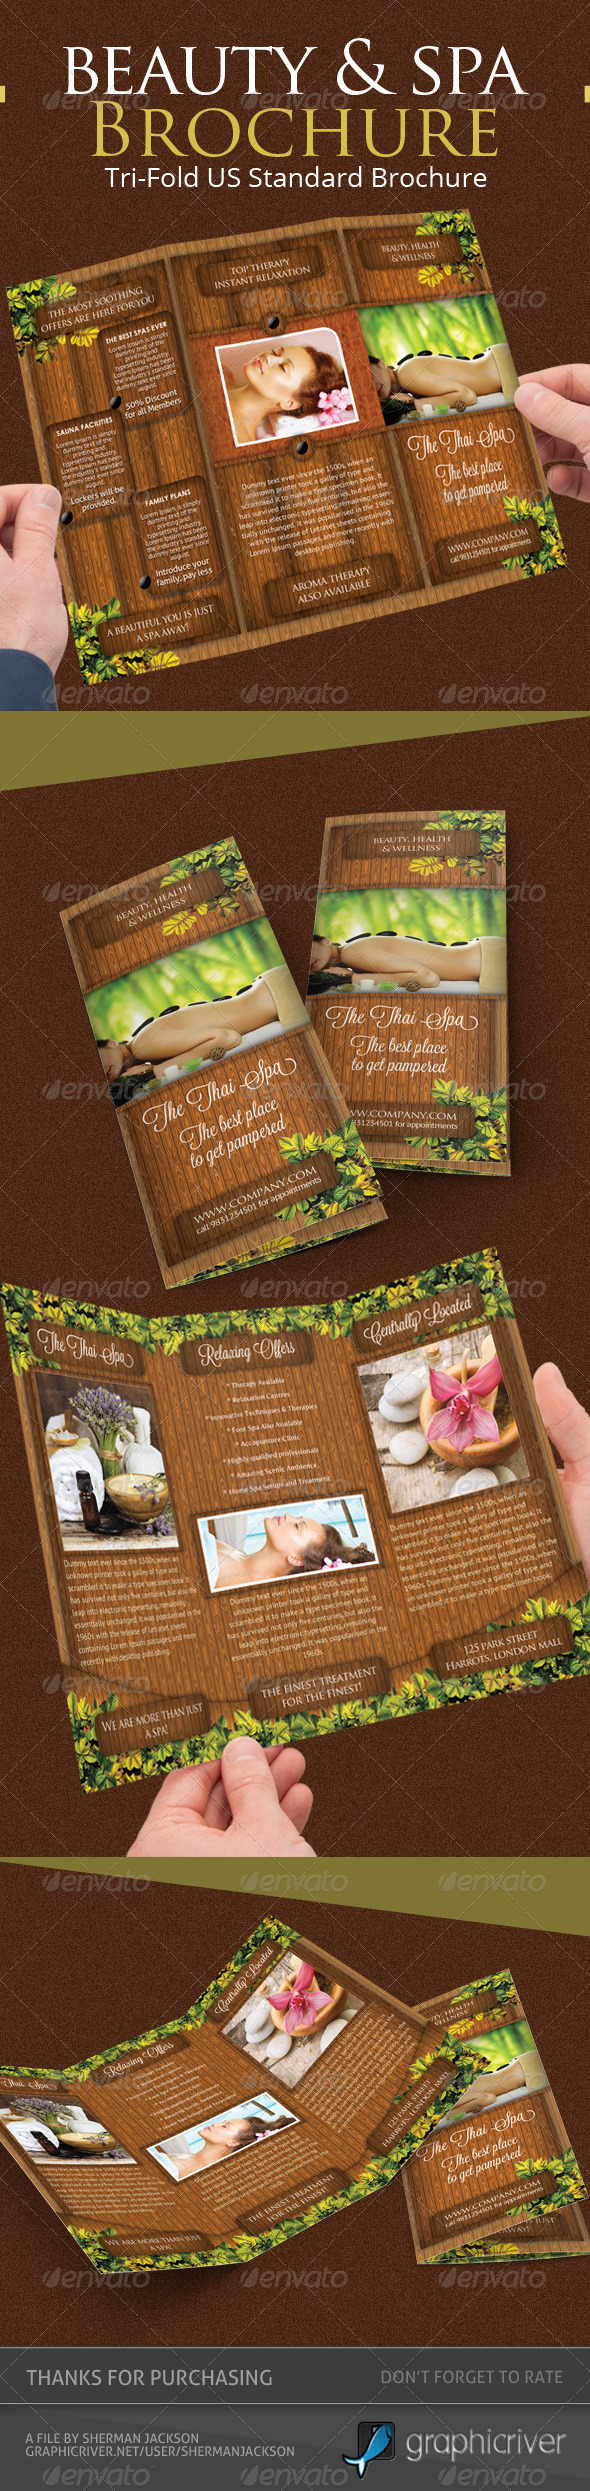 GraphicRiver Beauty & Spa Brochure 3972671